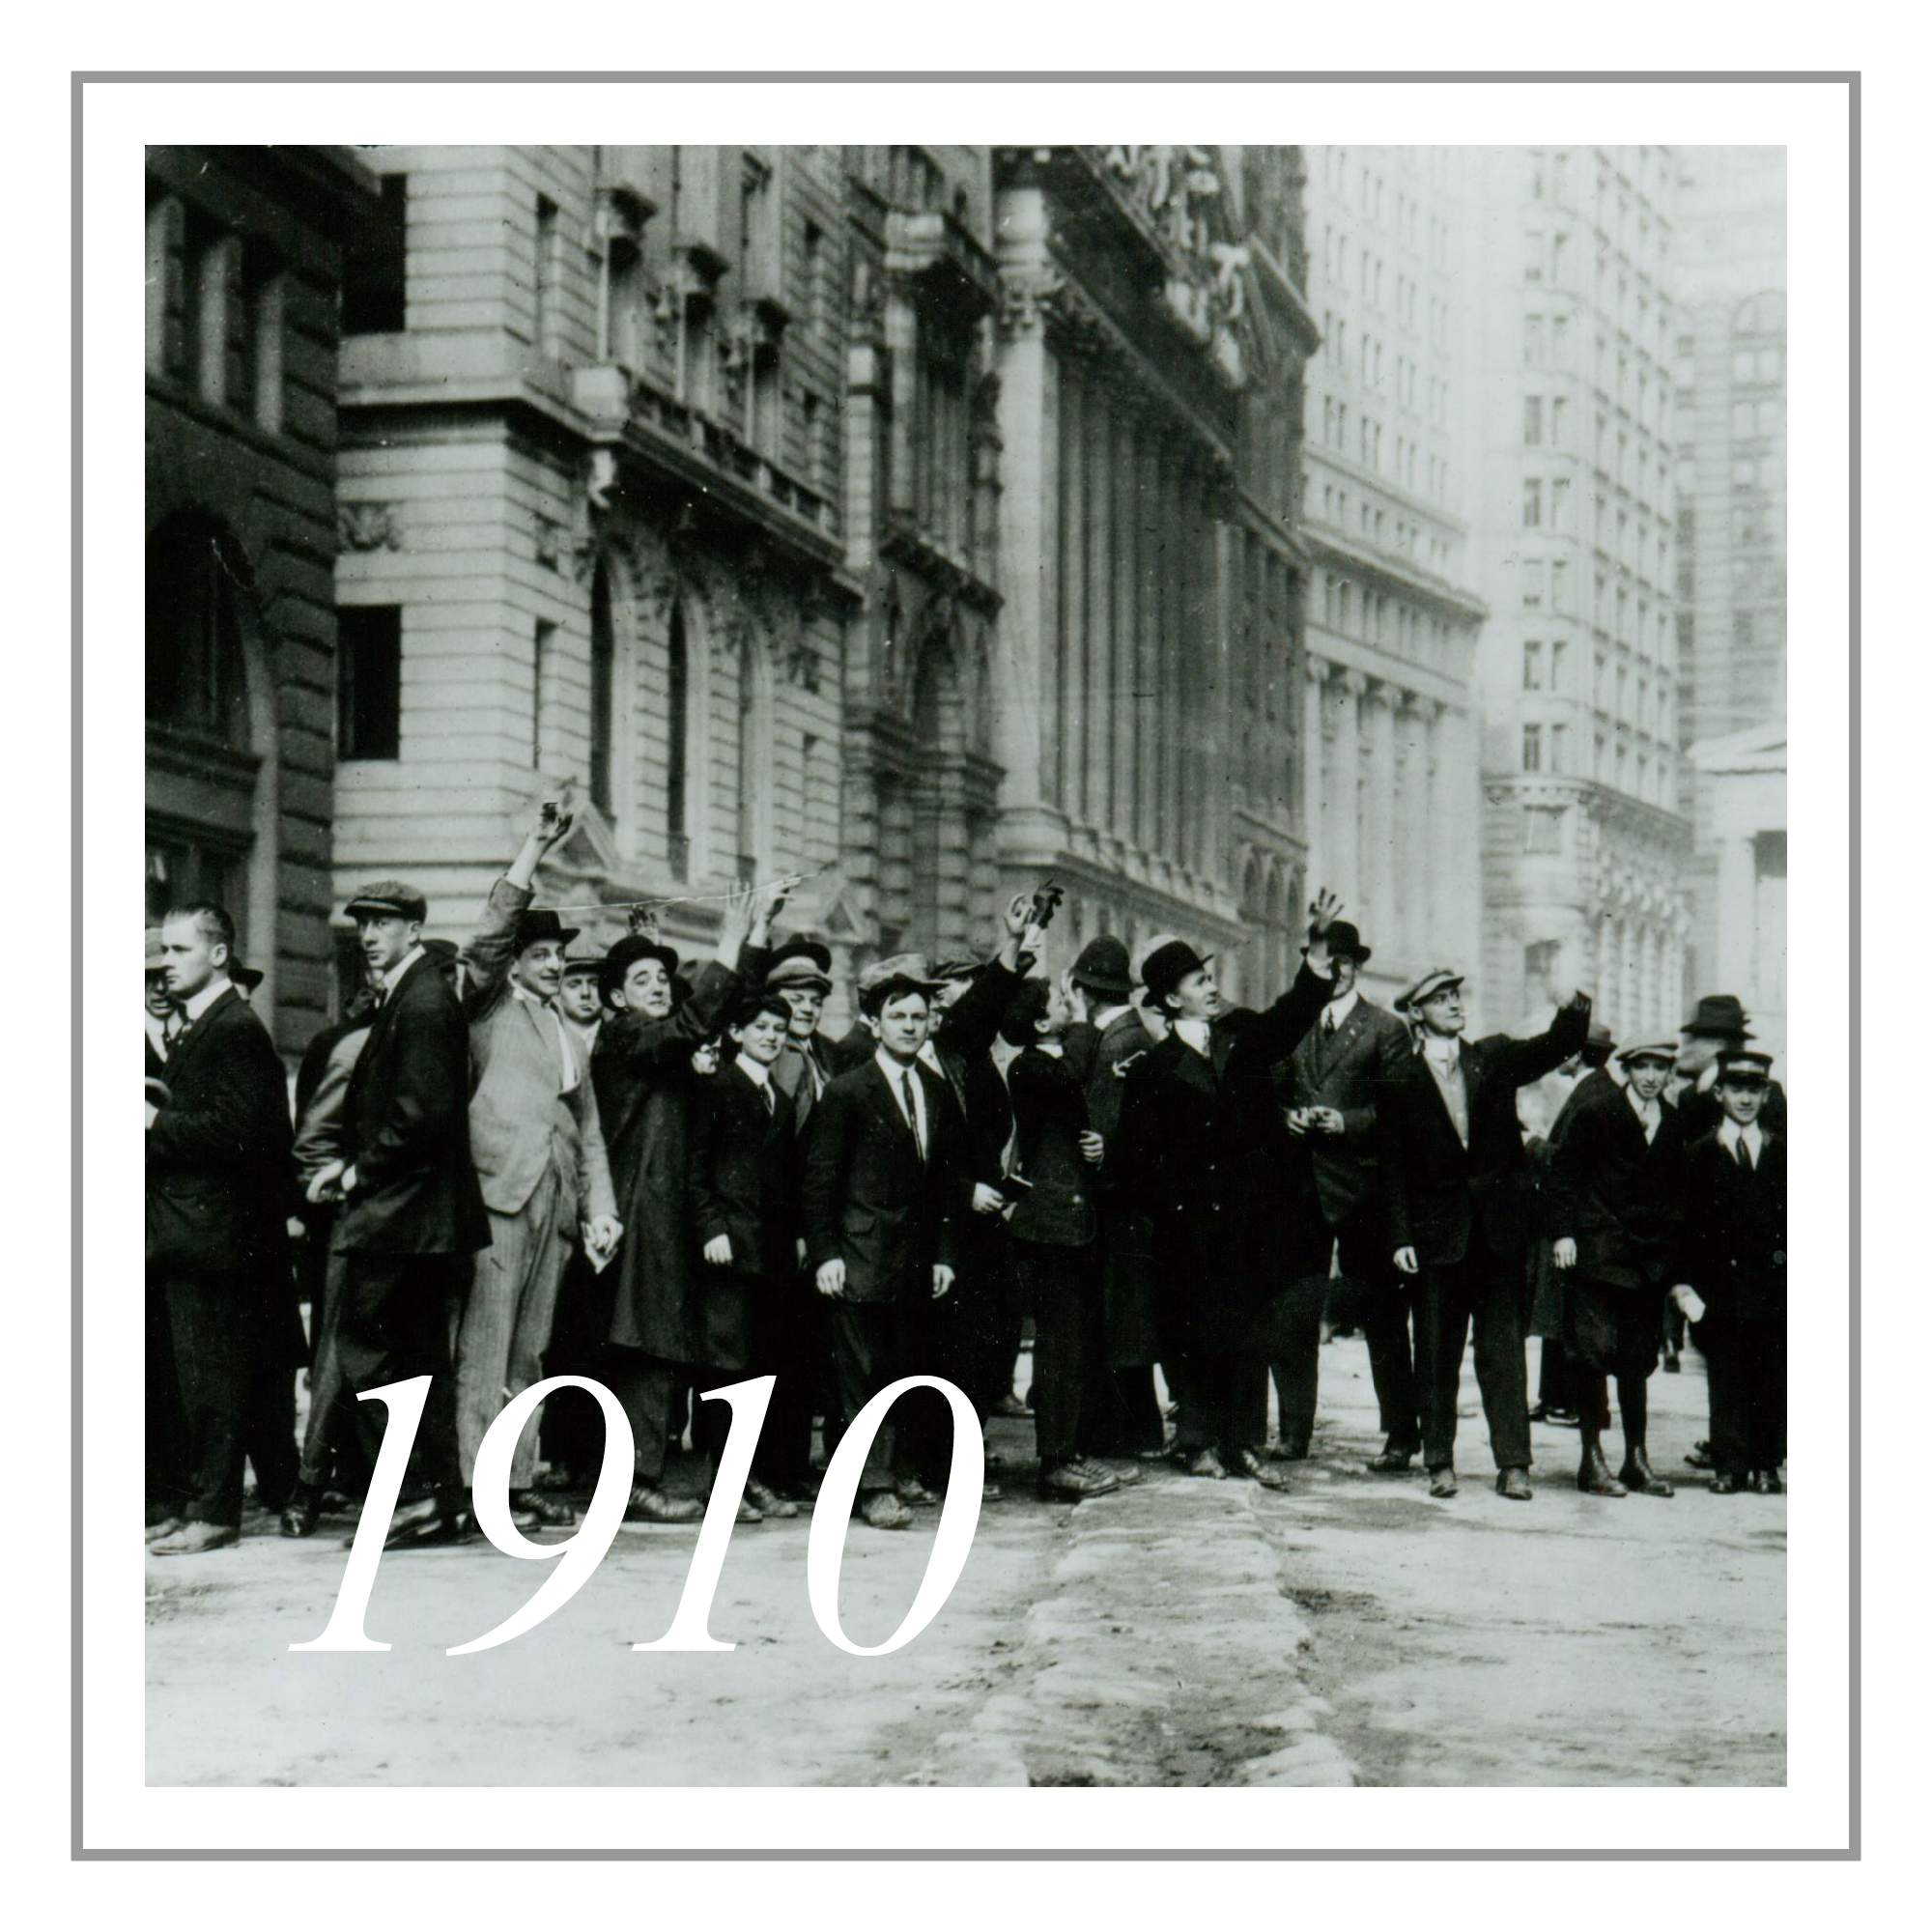 Early Beginnings - Our founder, Joseph Streicher, formed J. Streicher & Co and shortly thereafter joined the New York Curb Exchange, predecessor of the American Stock Exchange. It was the forefront of early Wall Street, and the beginning of the financial district, in the heart of downtown New York.